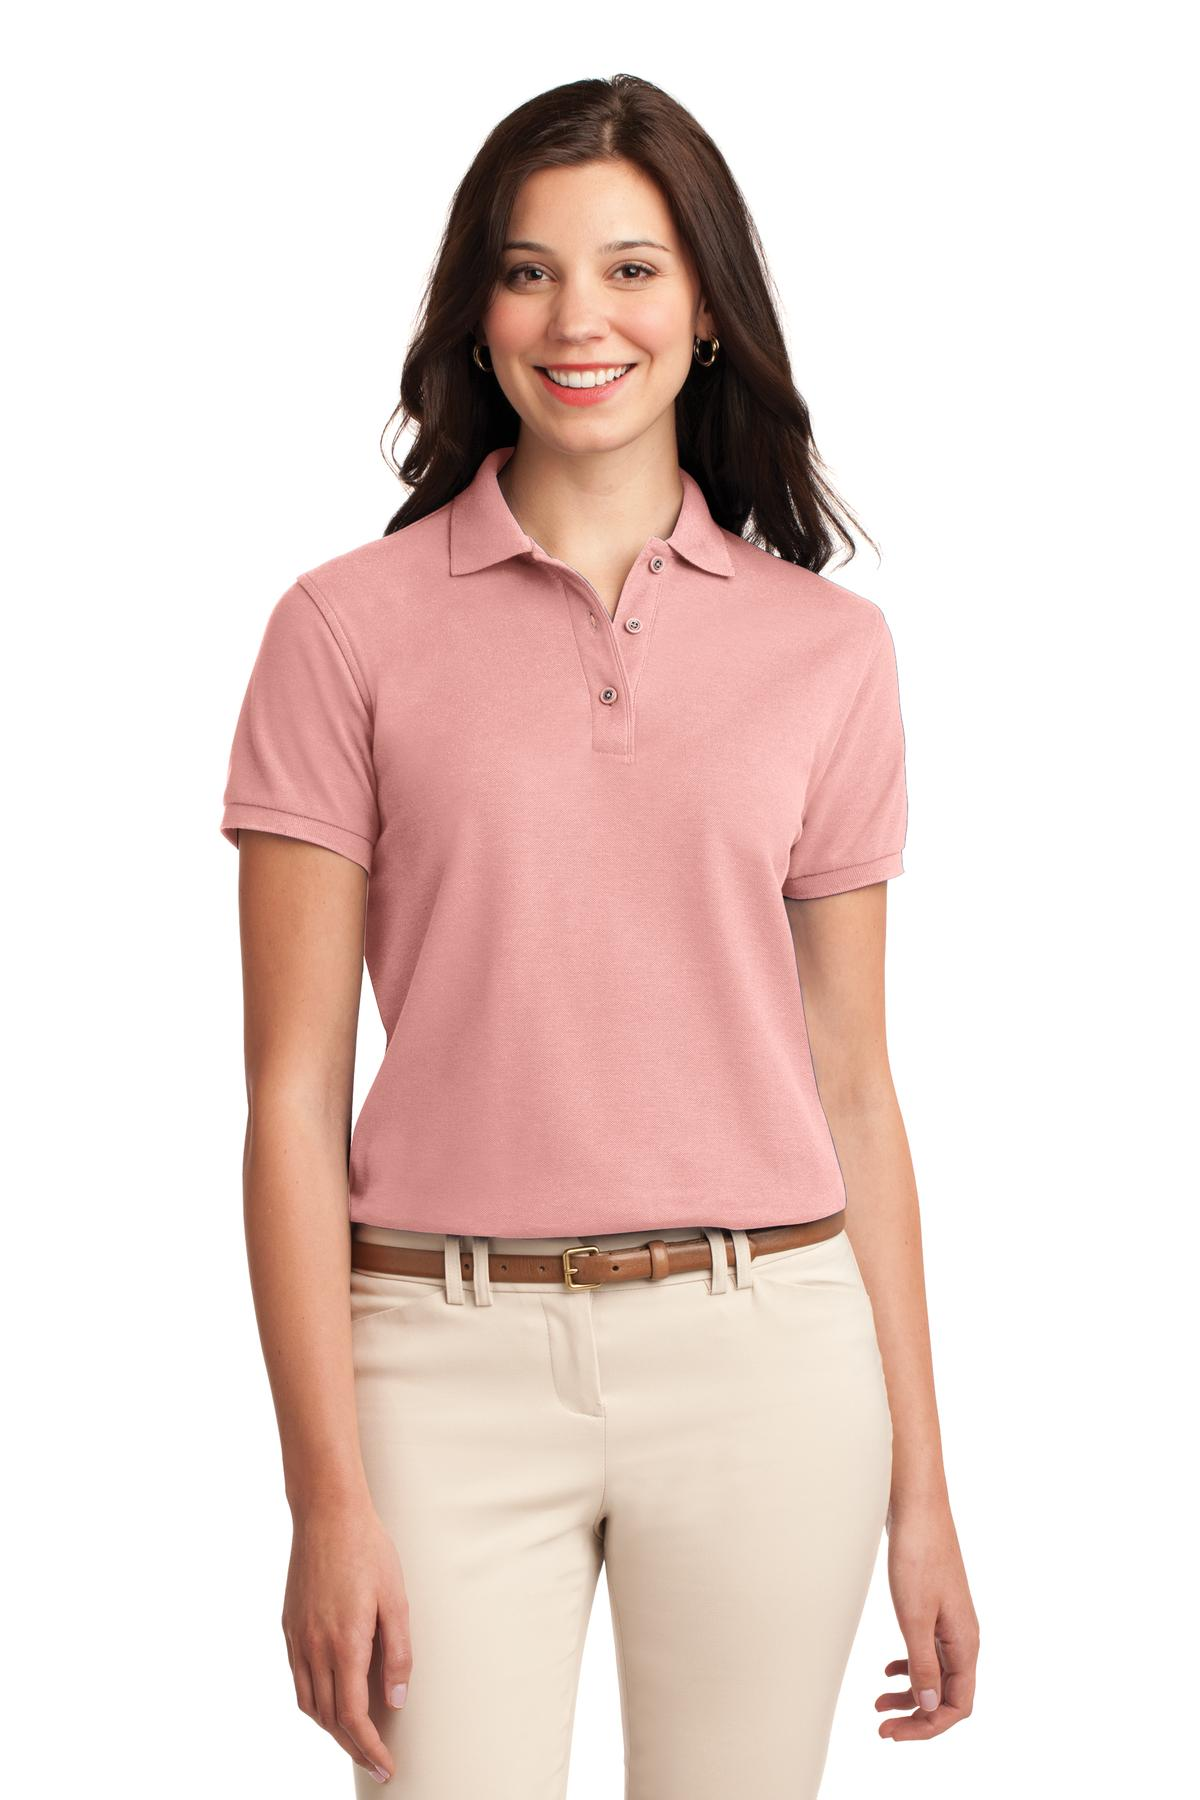 Clover Green Port Authority Ladies Silk Touch Polo.